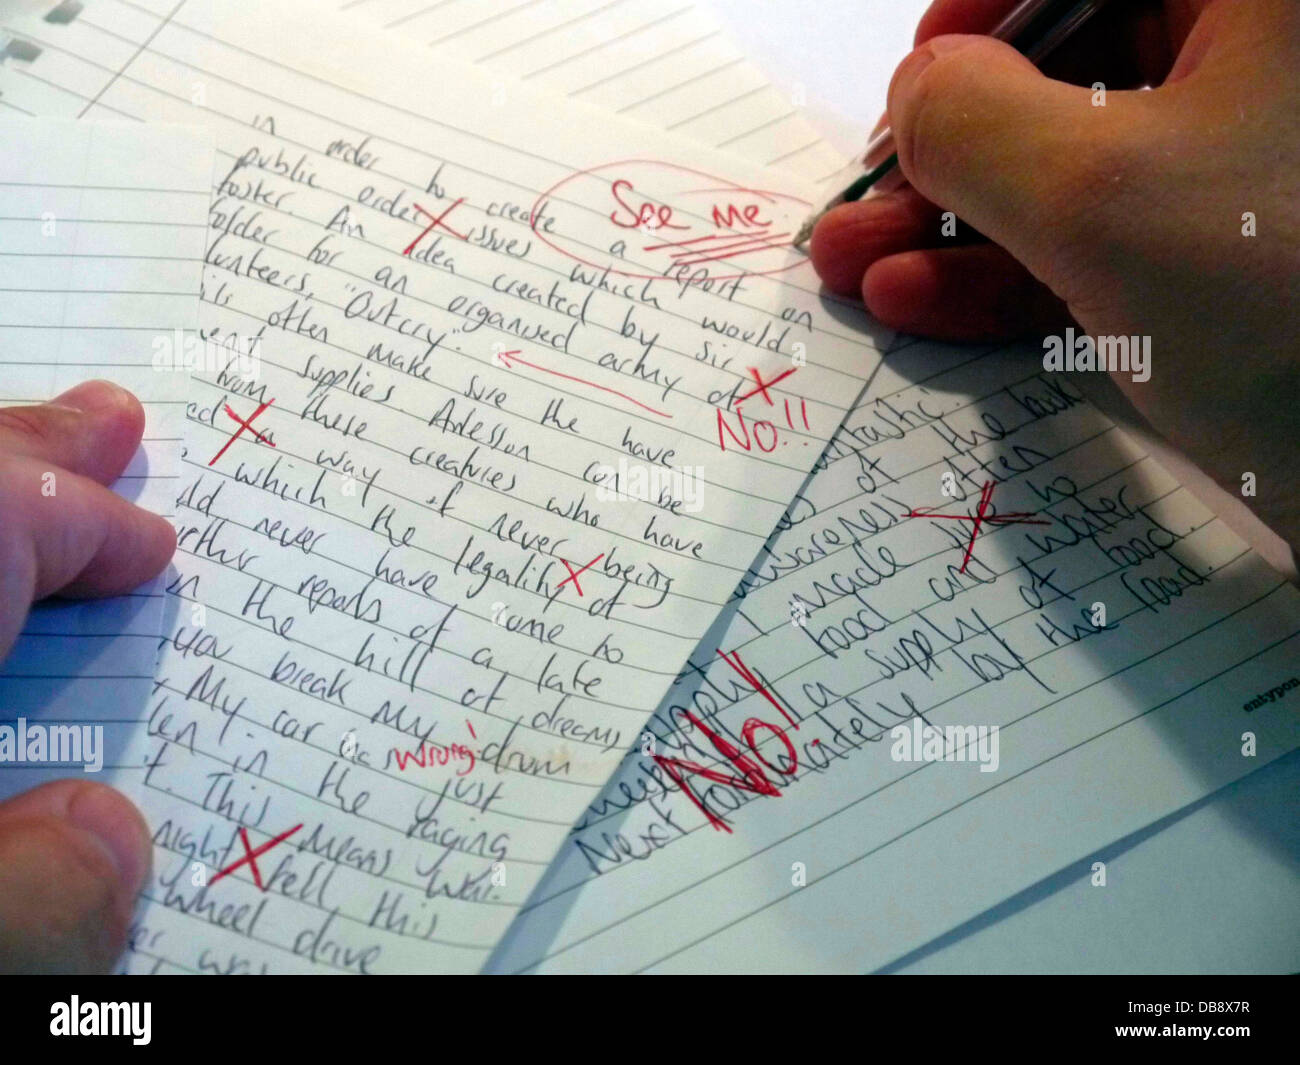 Everything you need to write a great essay